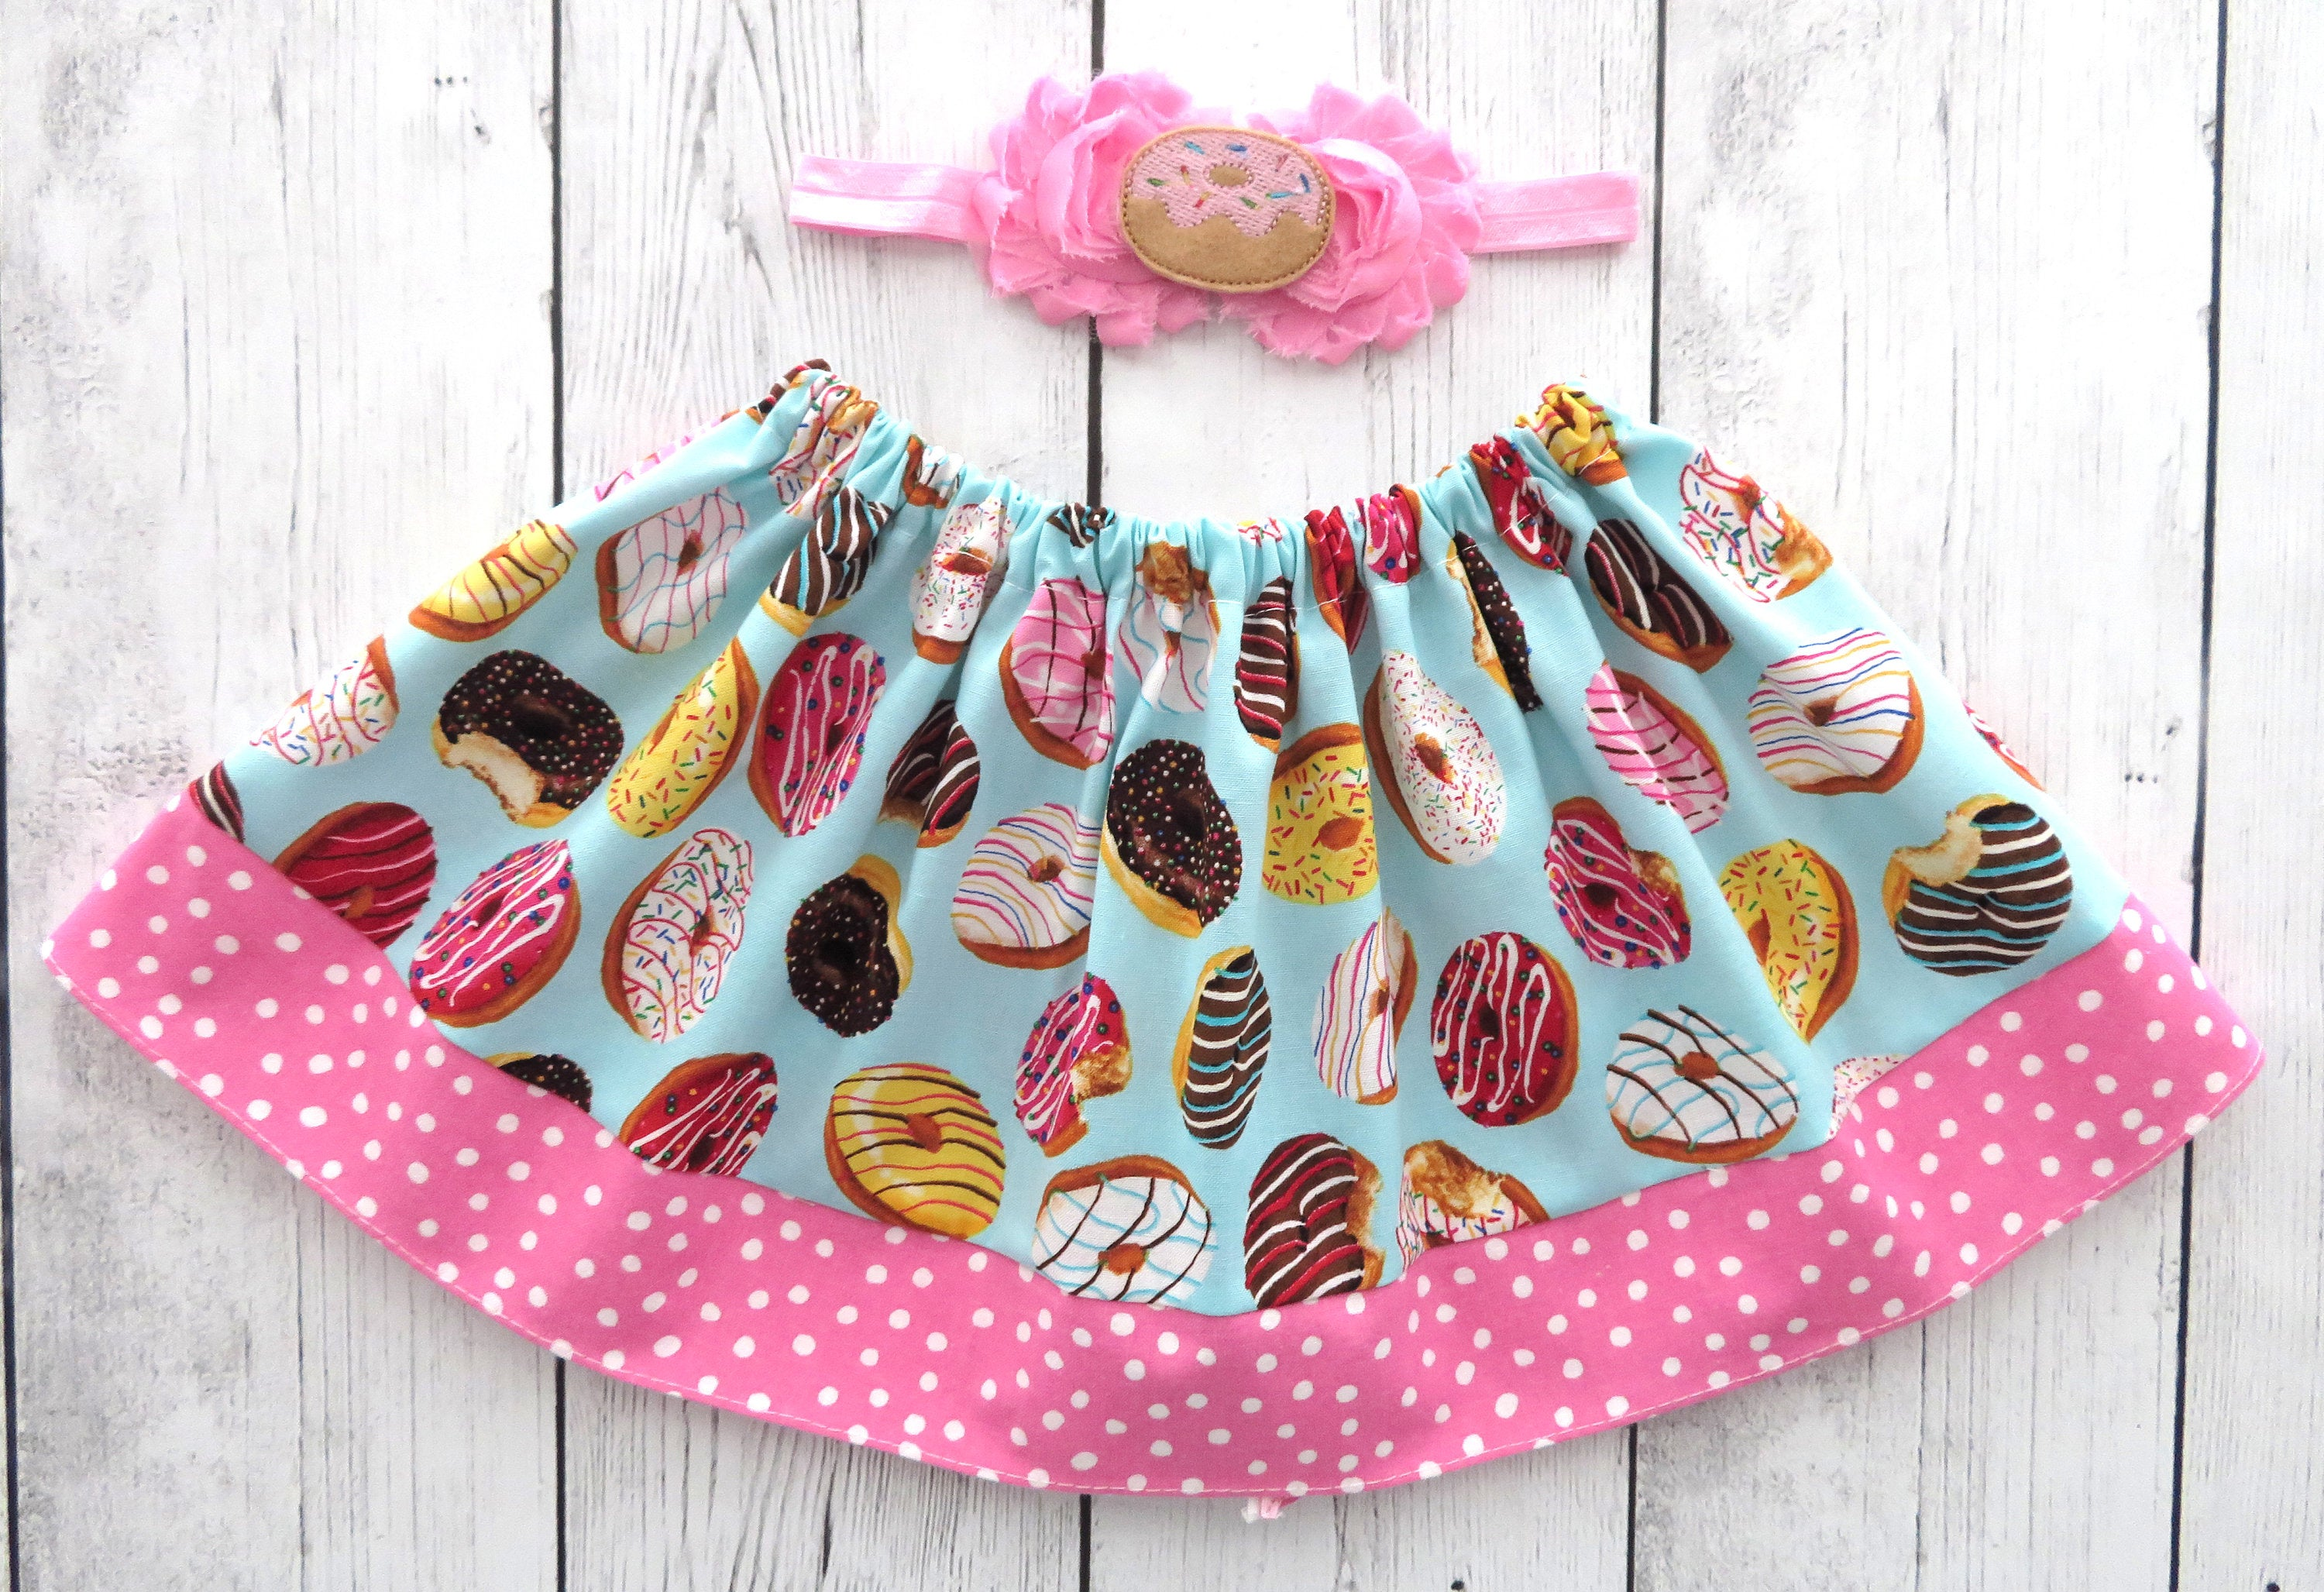 Donut Skirt for baby girl - donut grow up, donut first birthday, donut birthday pink, donut skirt pink, donut skirt for girl, donuts skirt